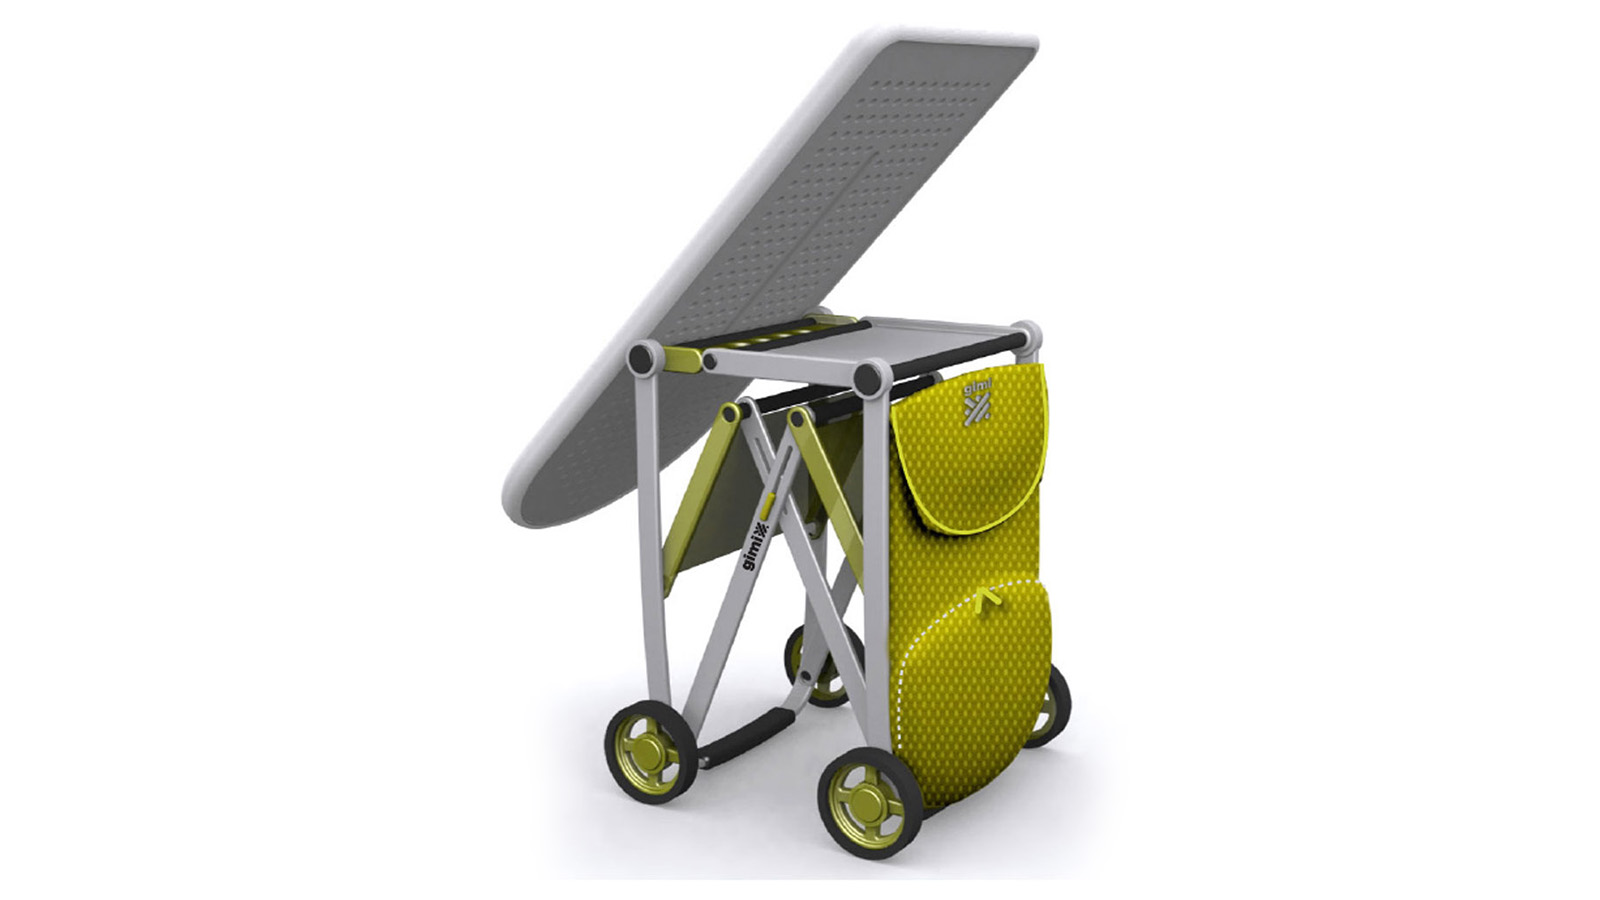 gimi-butterfly-ironing-board-prodotto